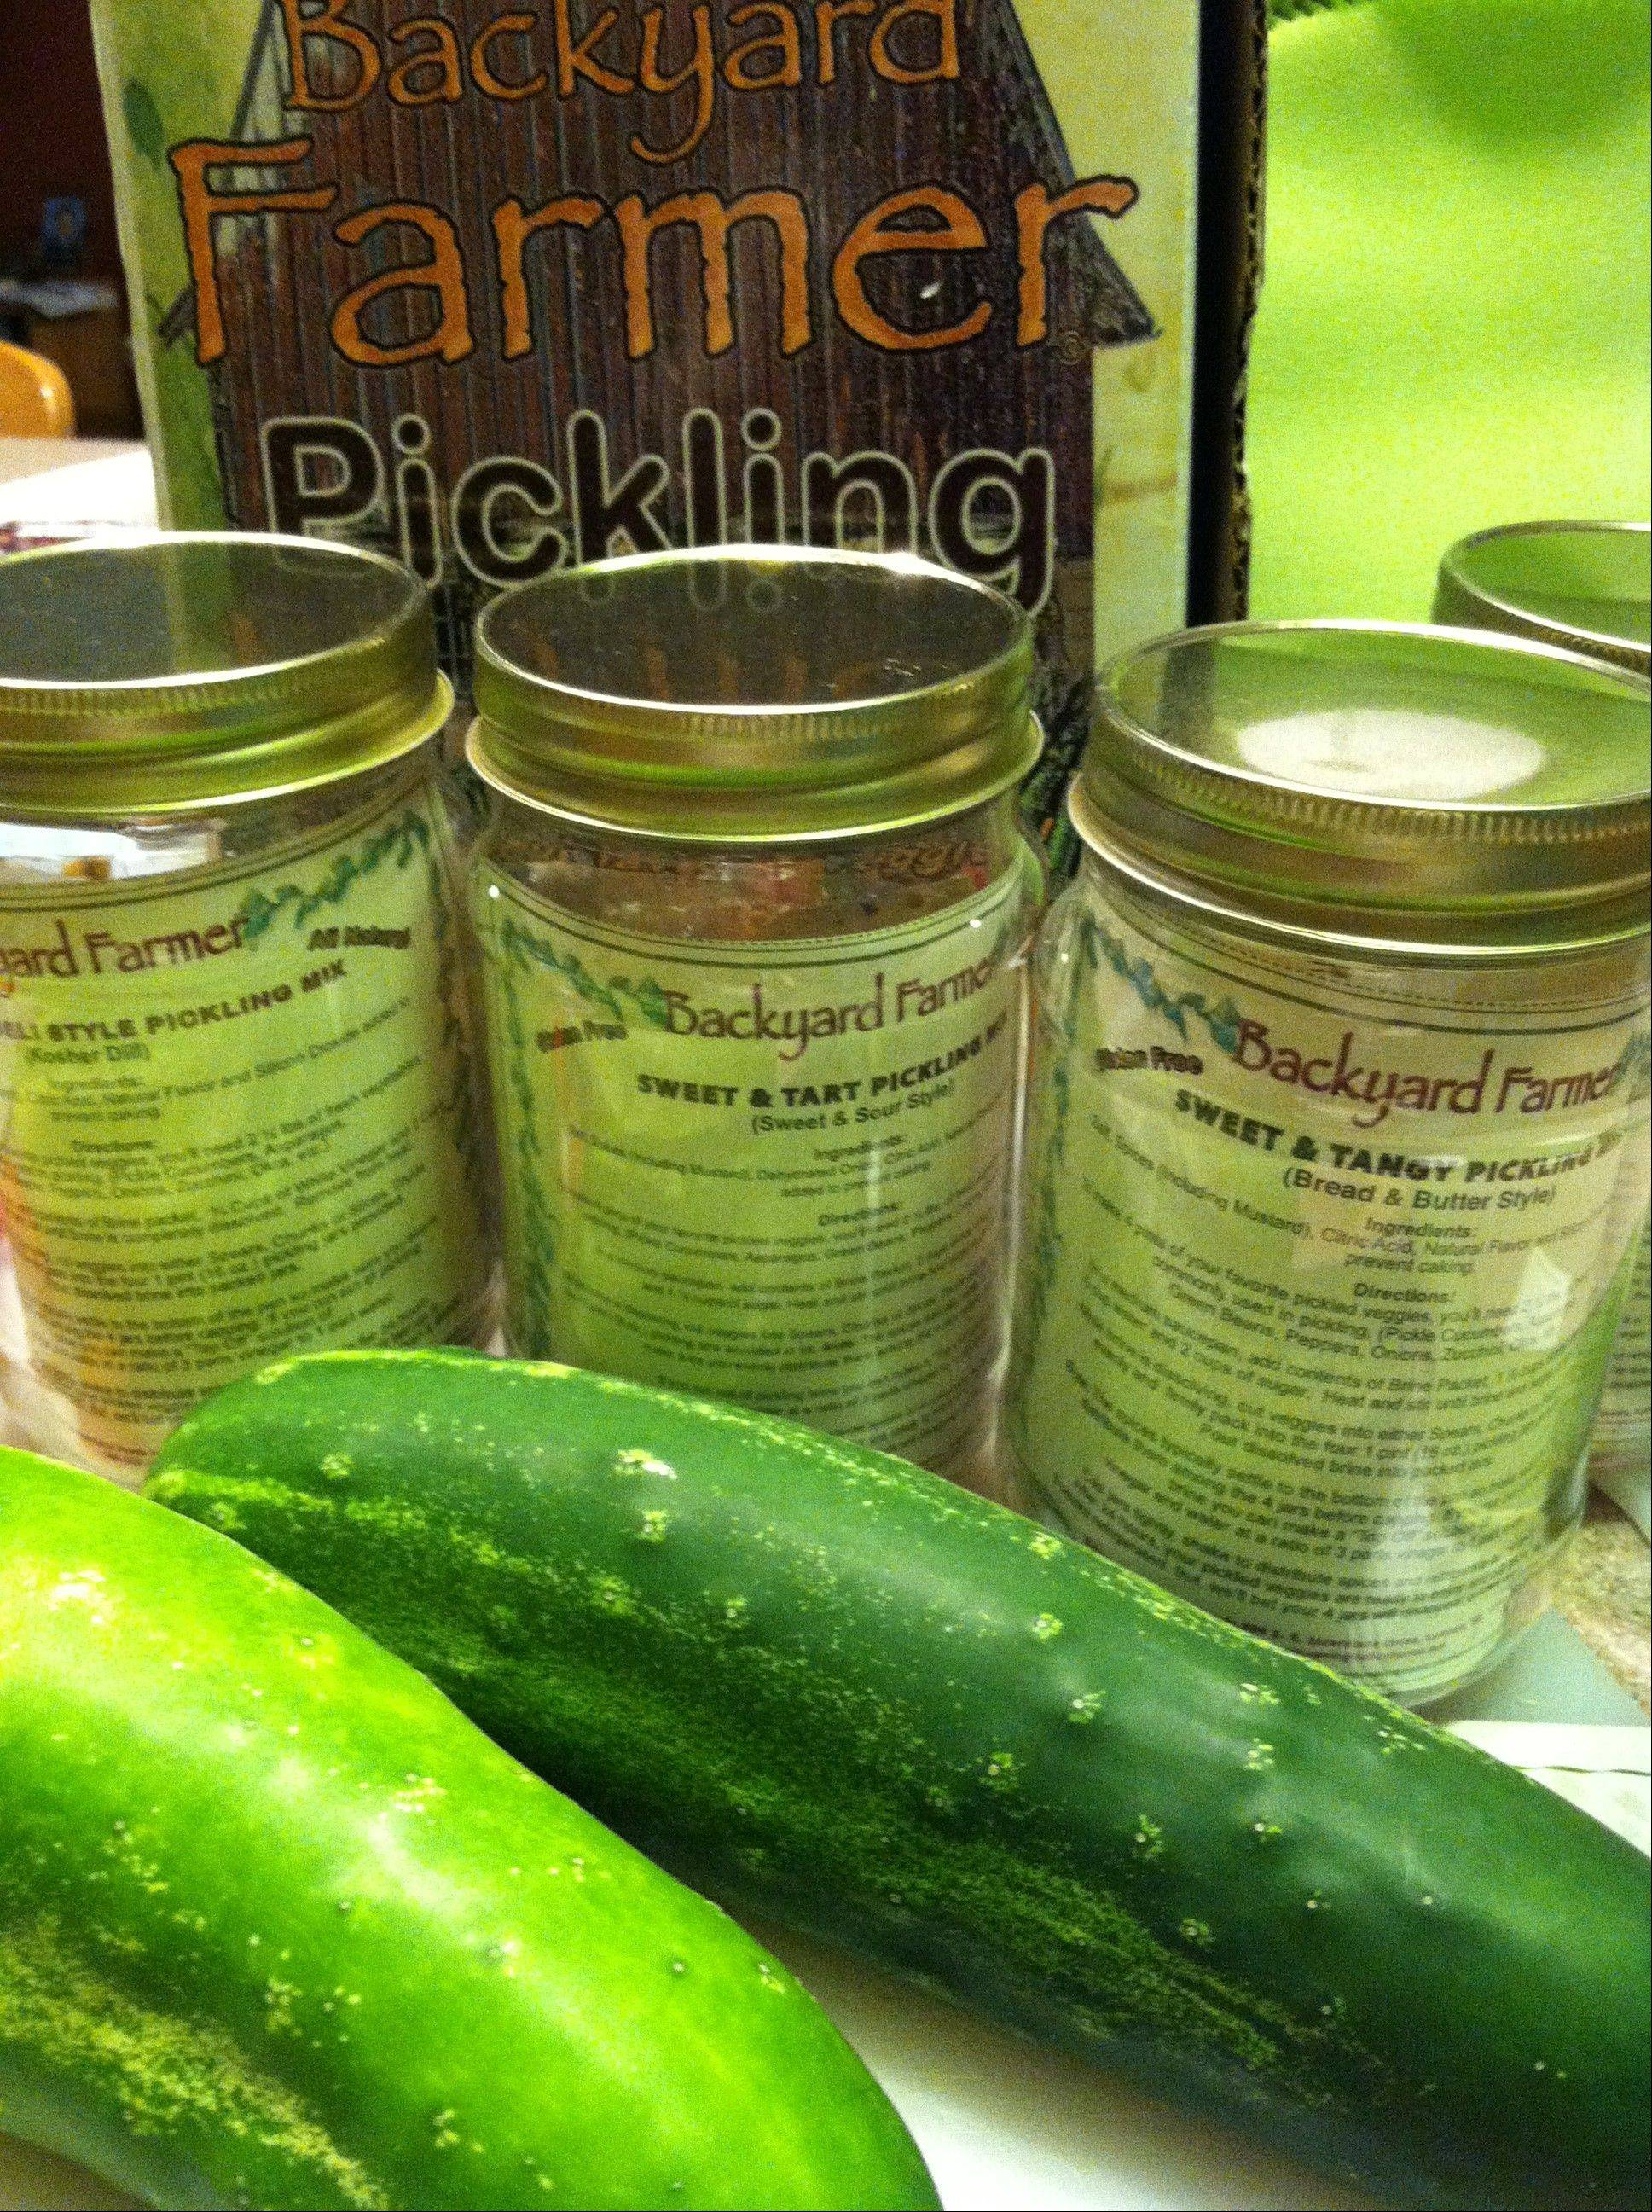 The Backyard Farmer Pickling Kit contains four reusable jars and enough brining spice to make 16 pints of pickles.